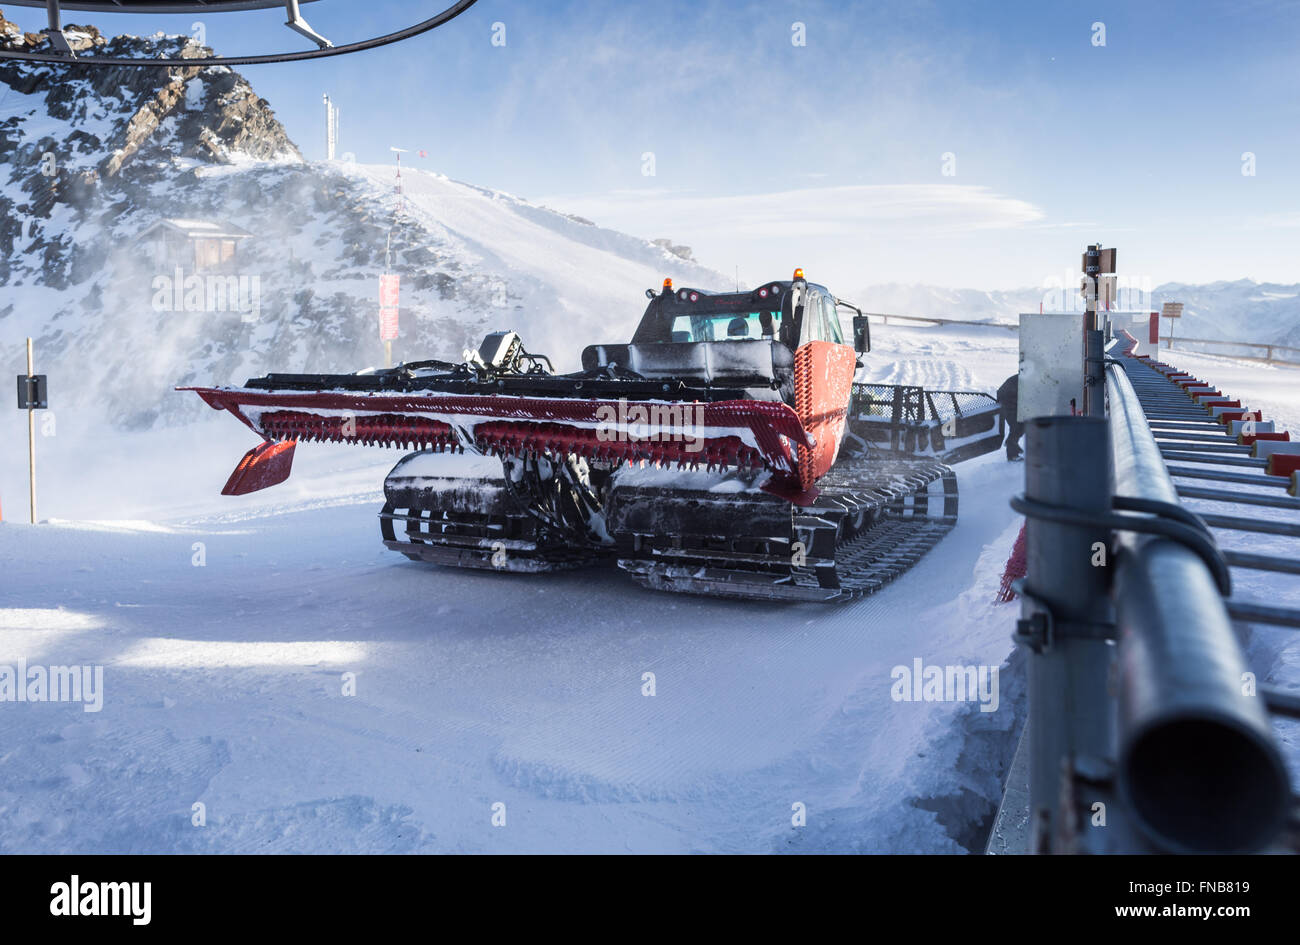 Snow Groomer in windy conditions Stock Photo